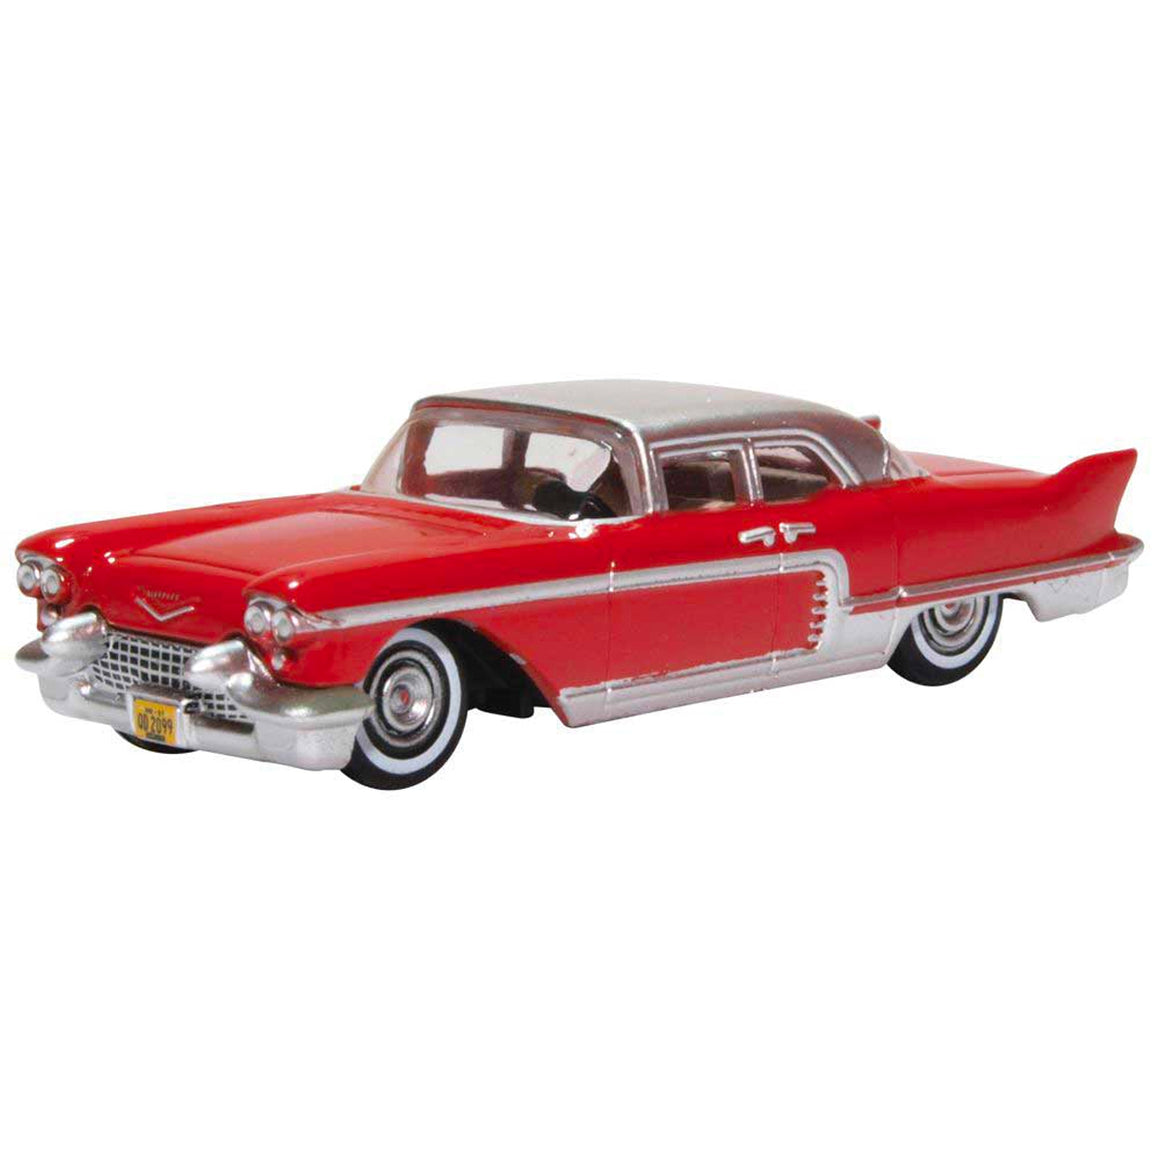 HO Scale: 1957 Cadillac Eldorado - Dakota Red